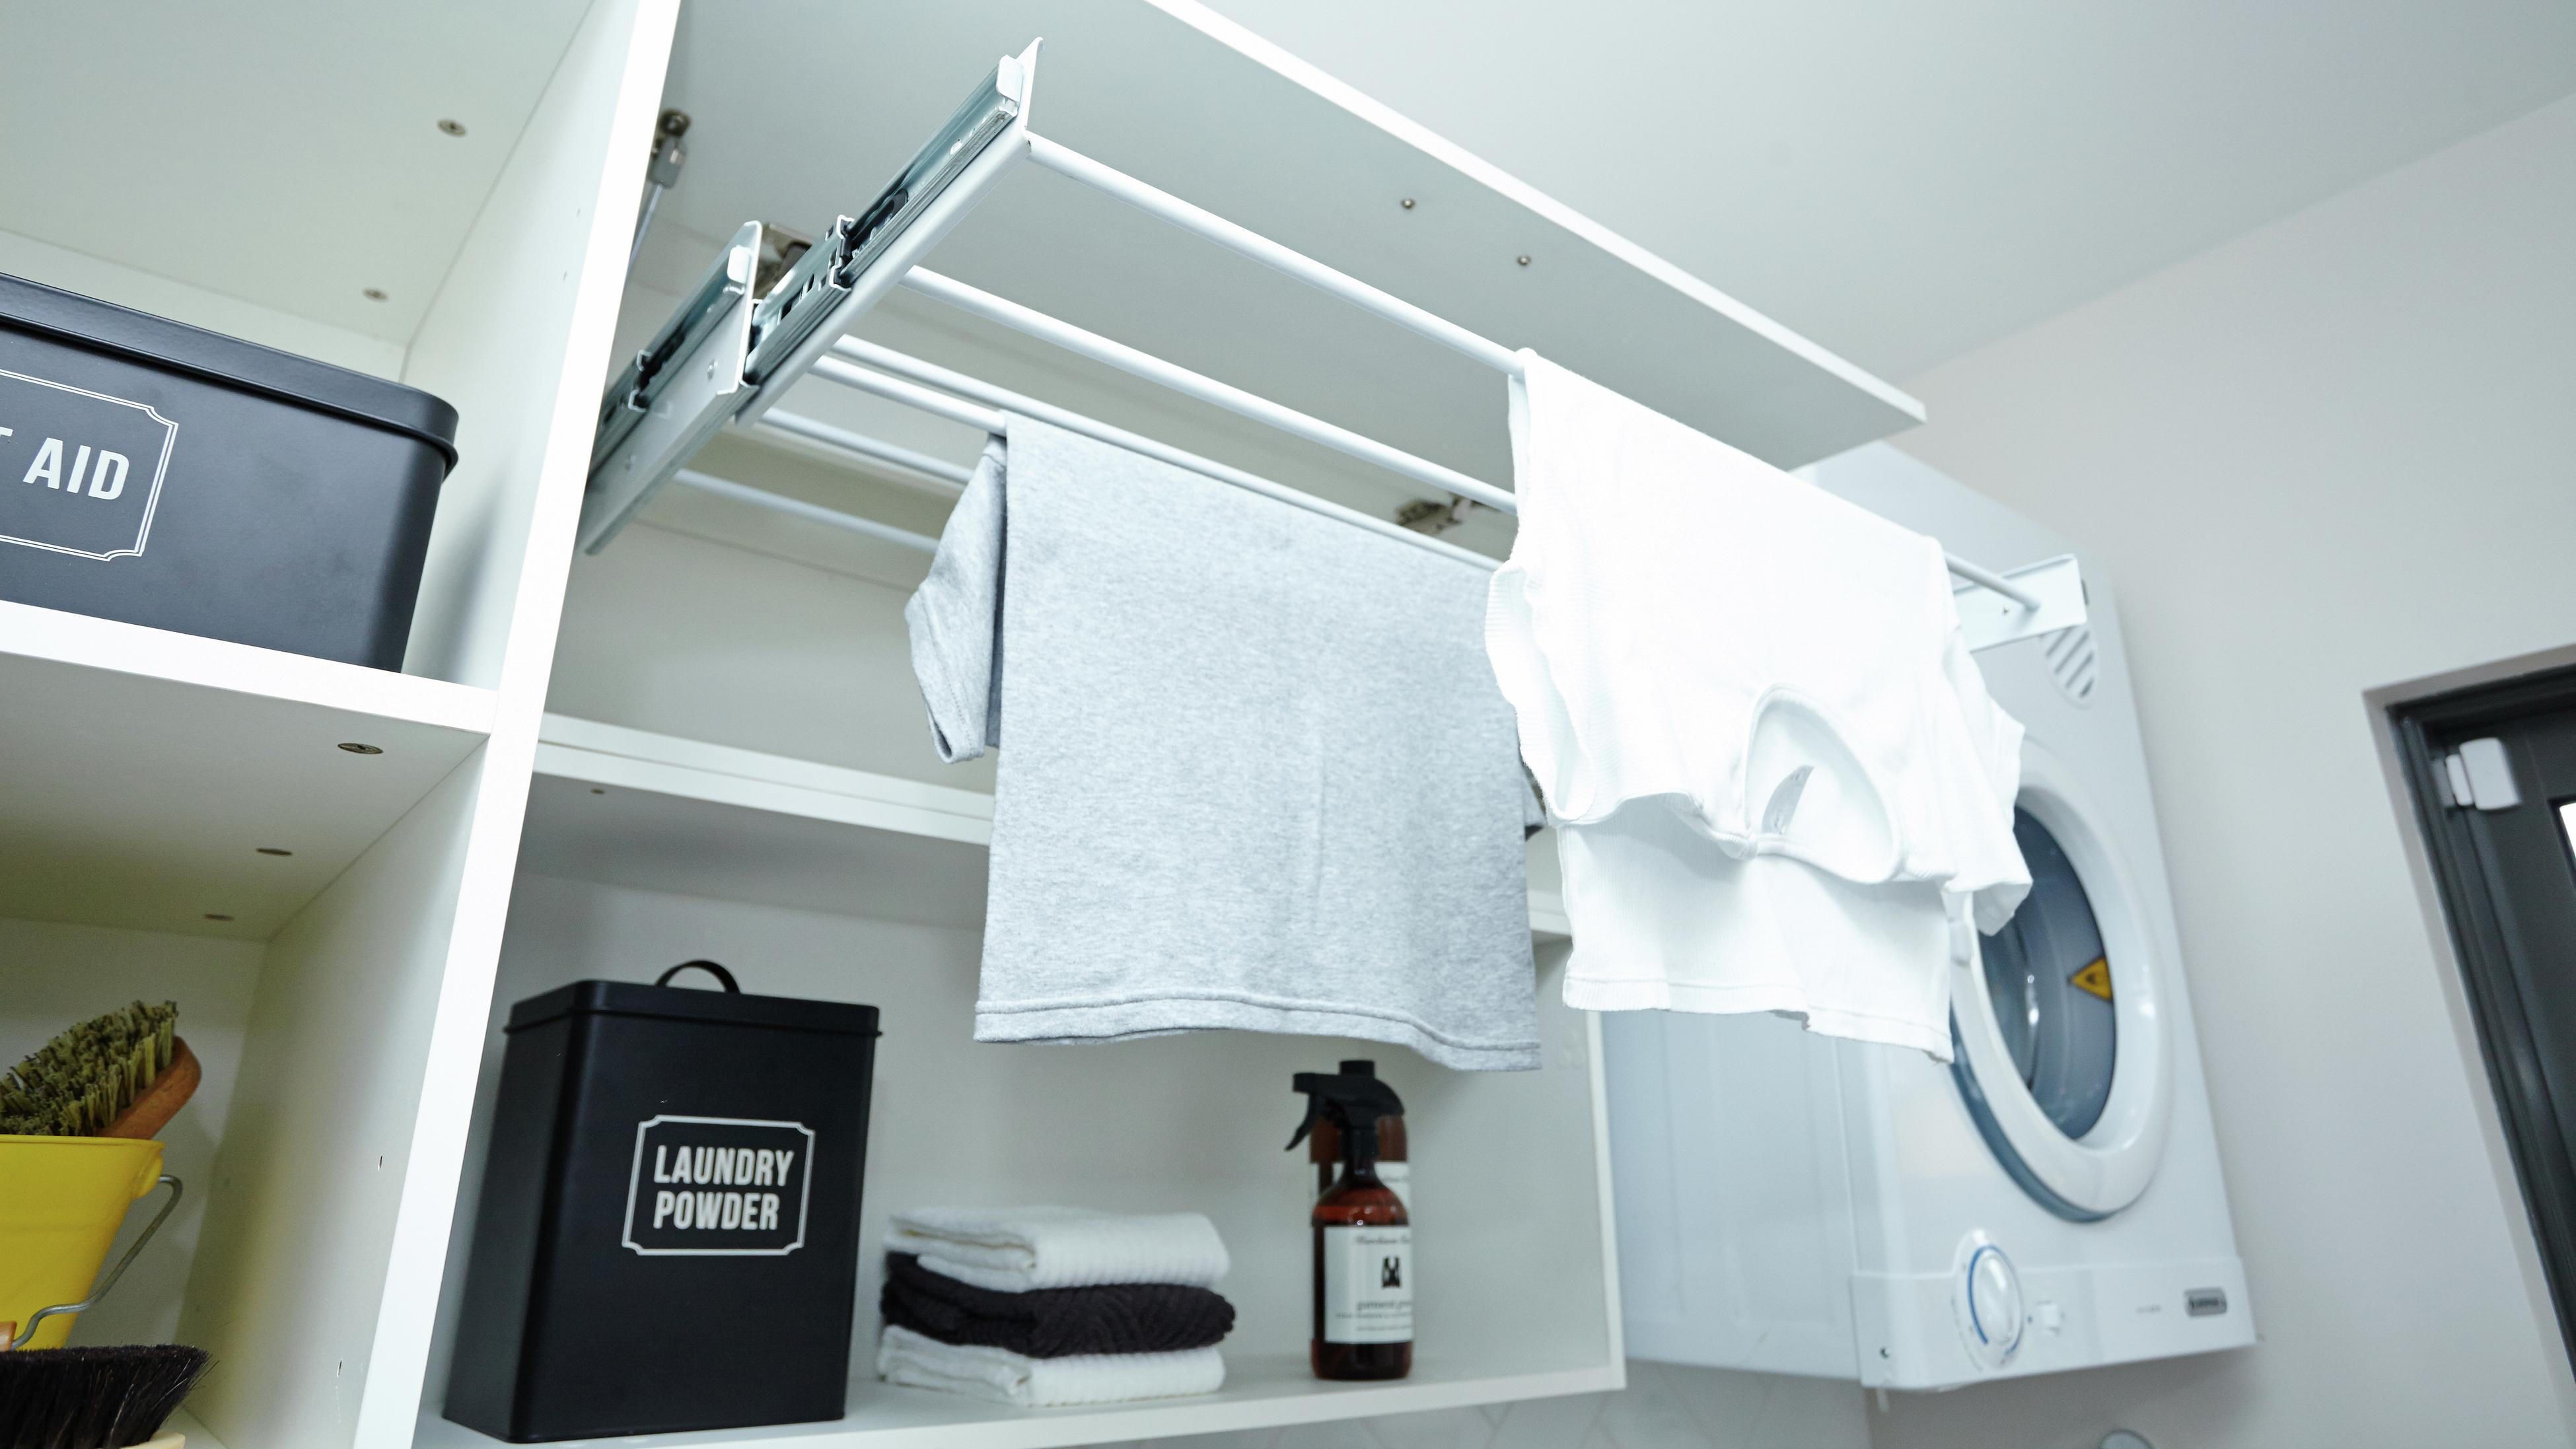 A drying cupboard with two tee shirts hanging on the drying rack.